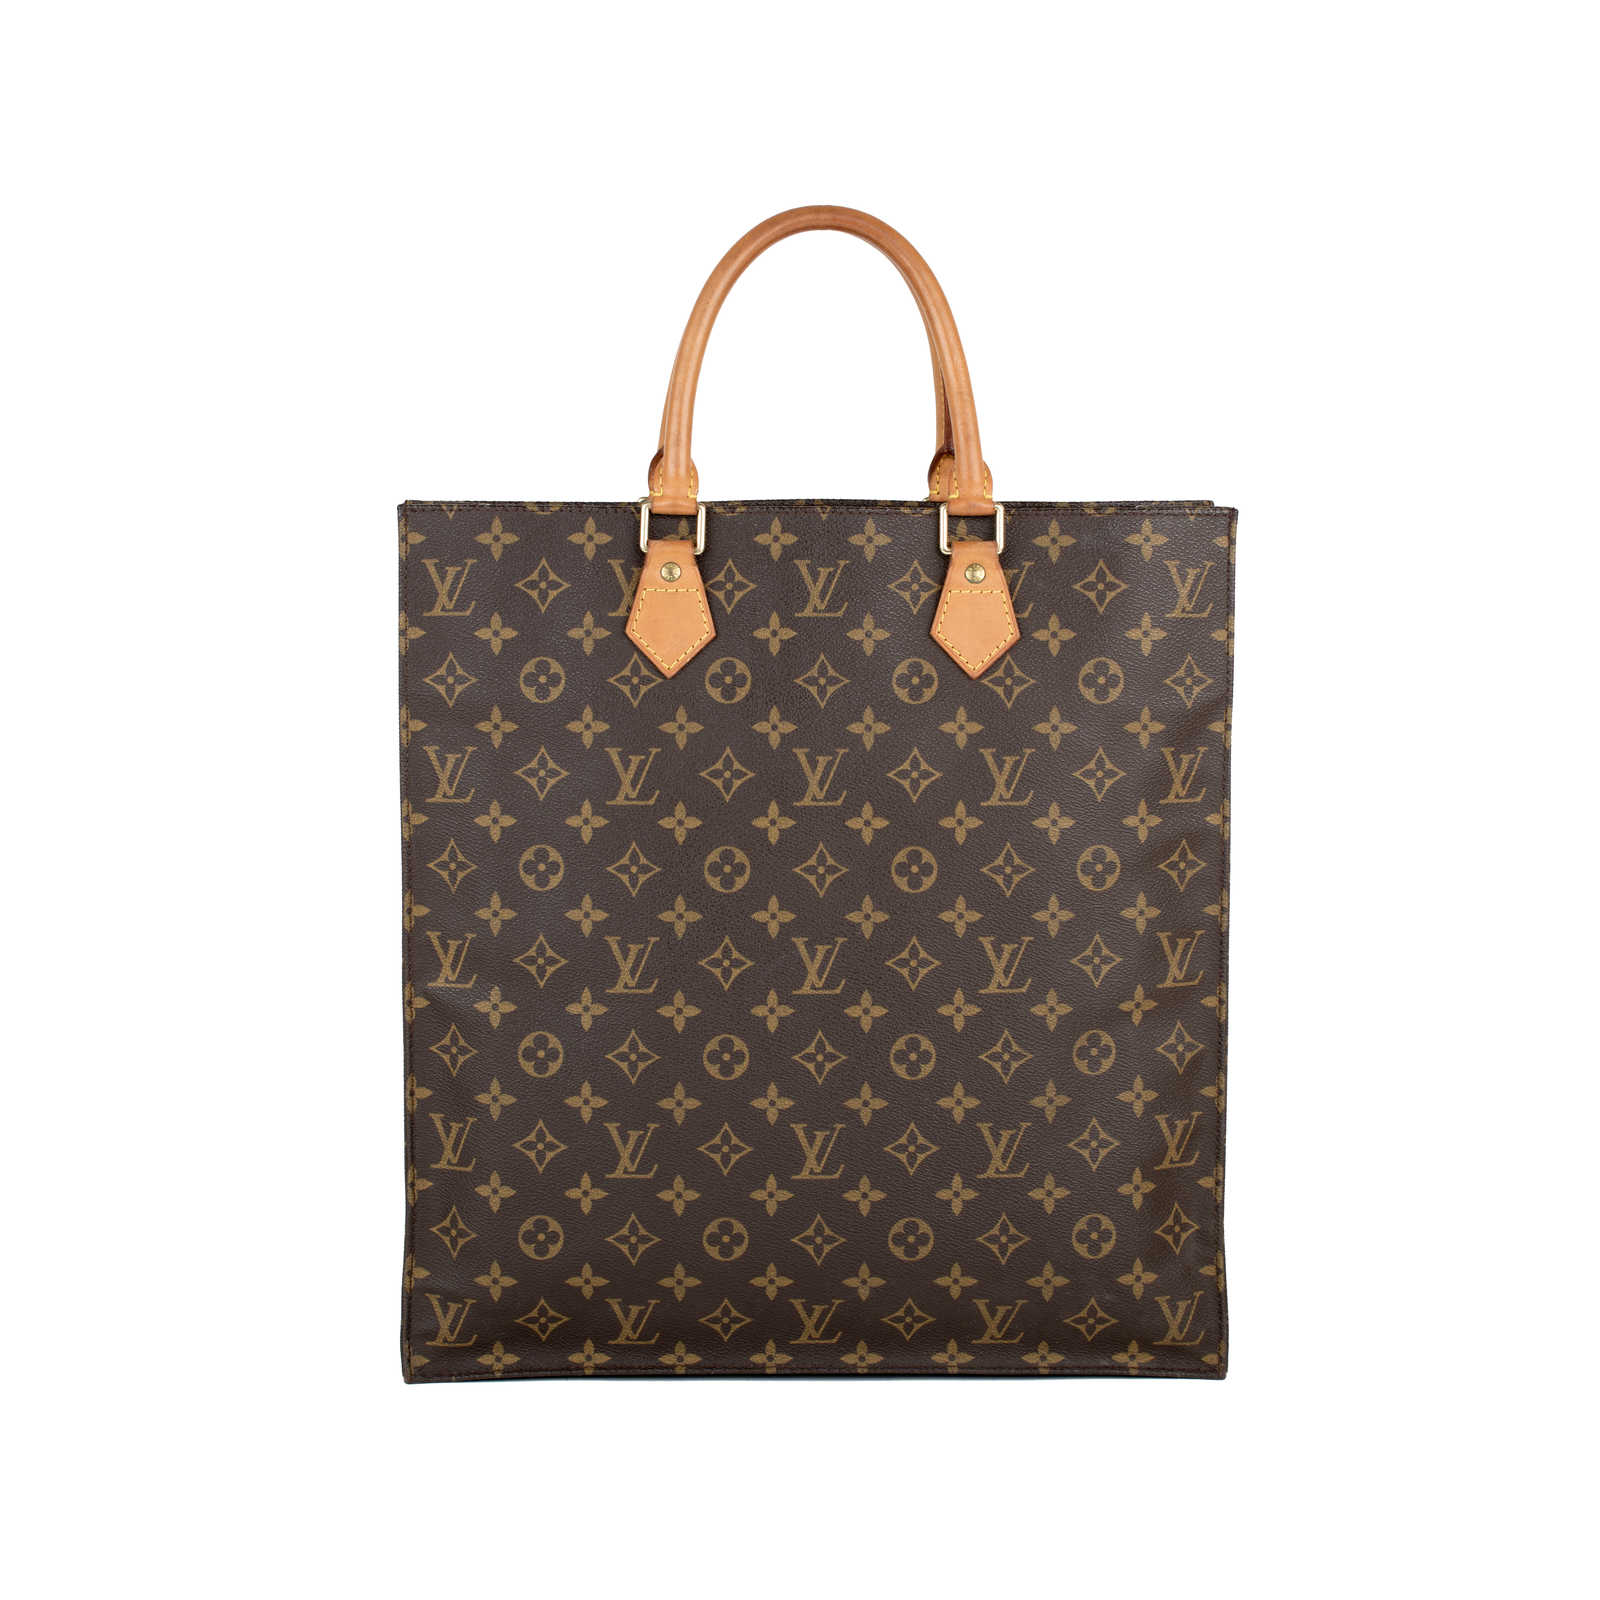 f52734ee74b7 Tap to expand · Authentic Second Hand Louis Vuitton Monogram Sac Plat Tote  Bag (PSS-430-00002 ...